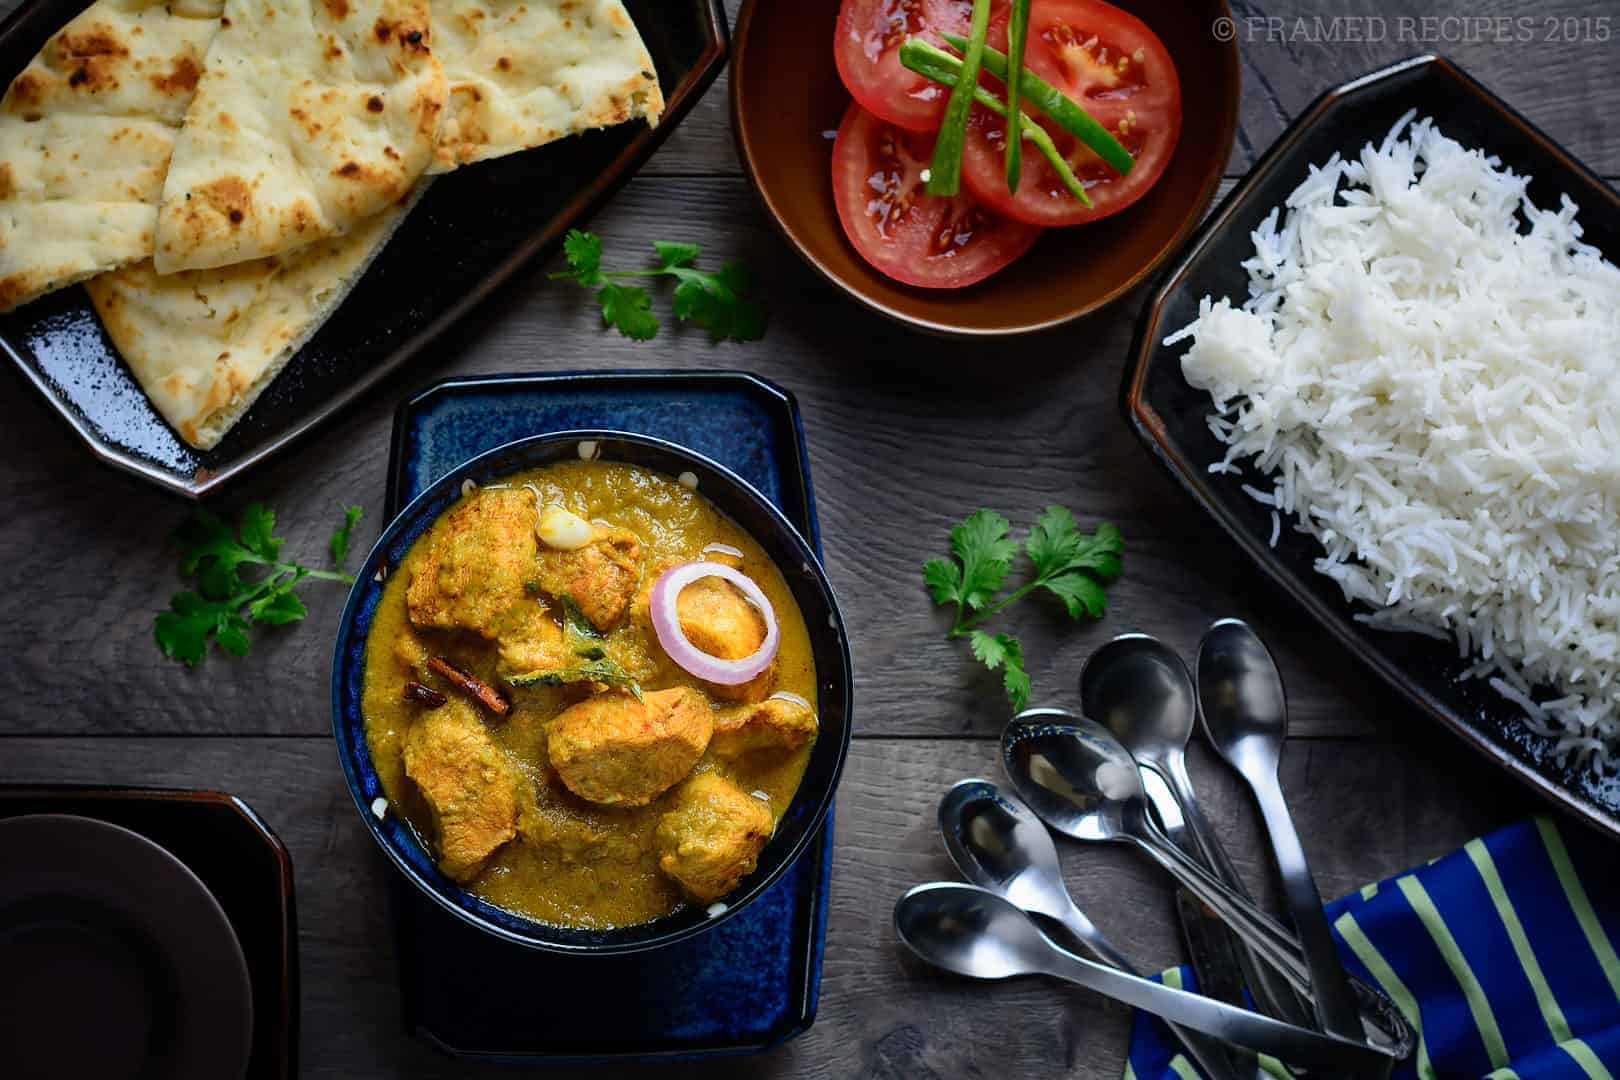 Cilantro Chicken Curry served with rice, naan and tomato slices with cutlery and serving plates on the side.